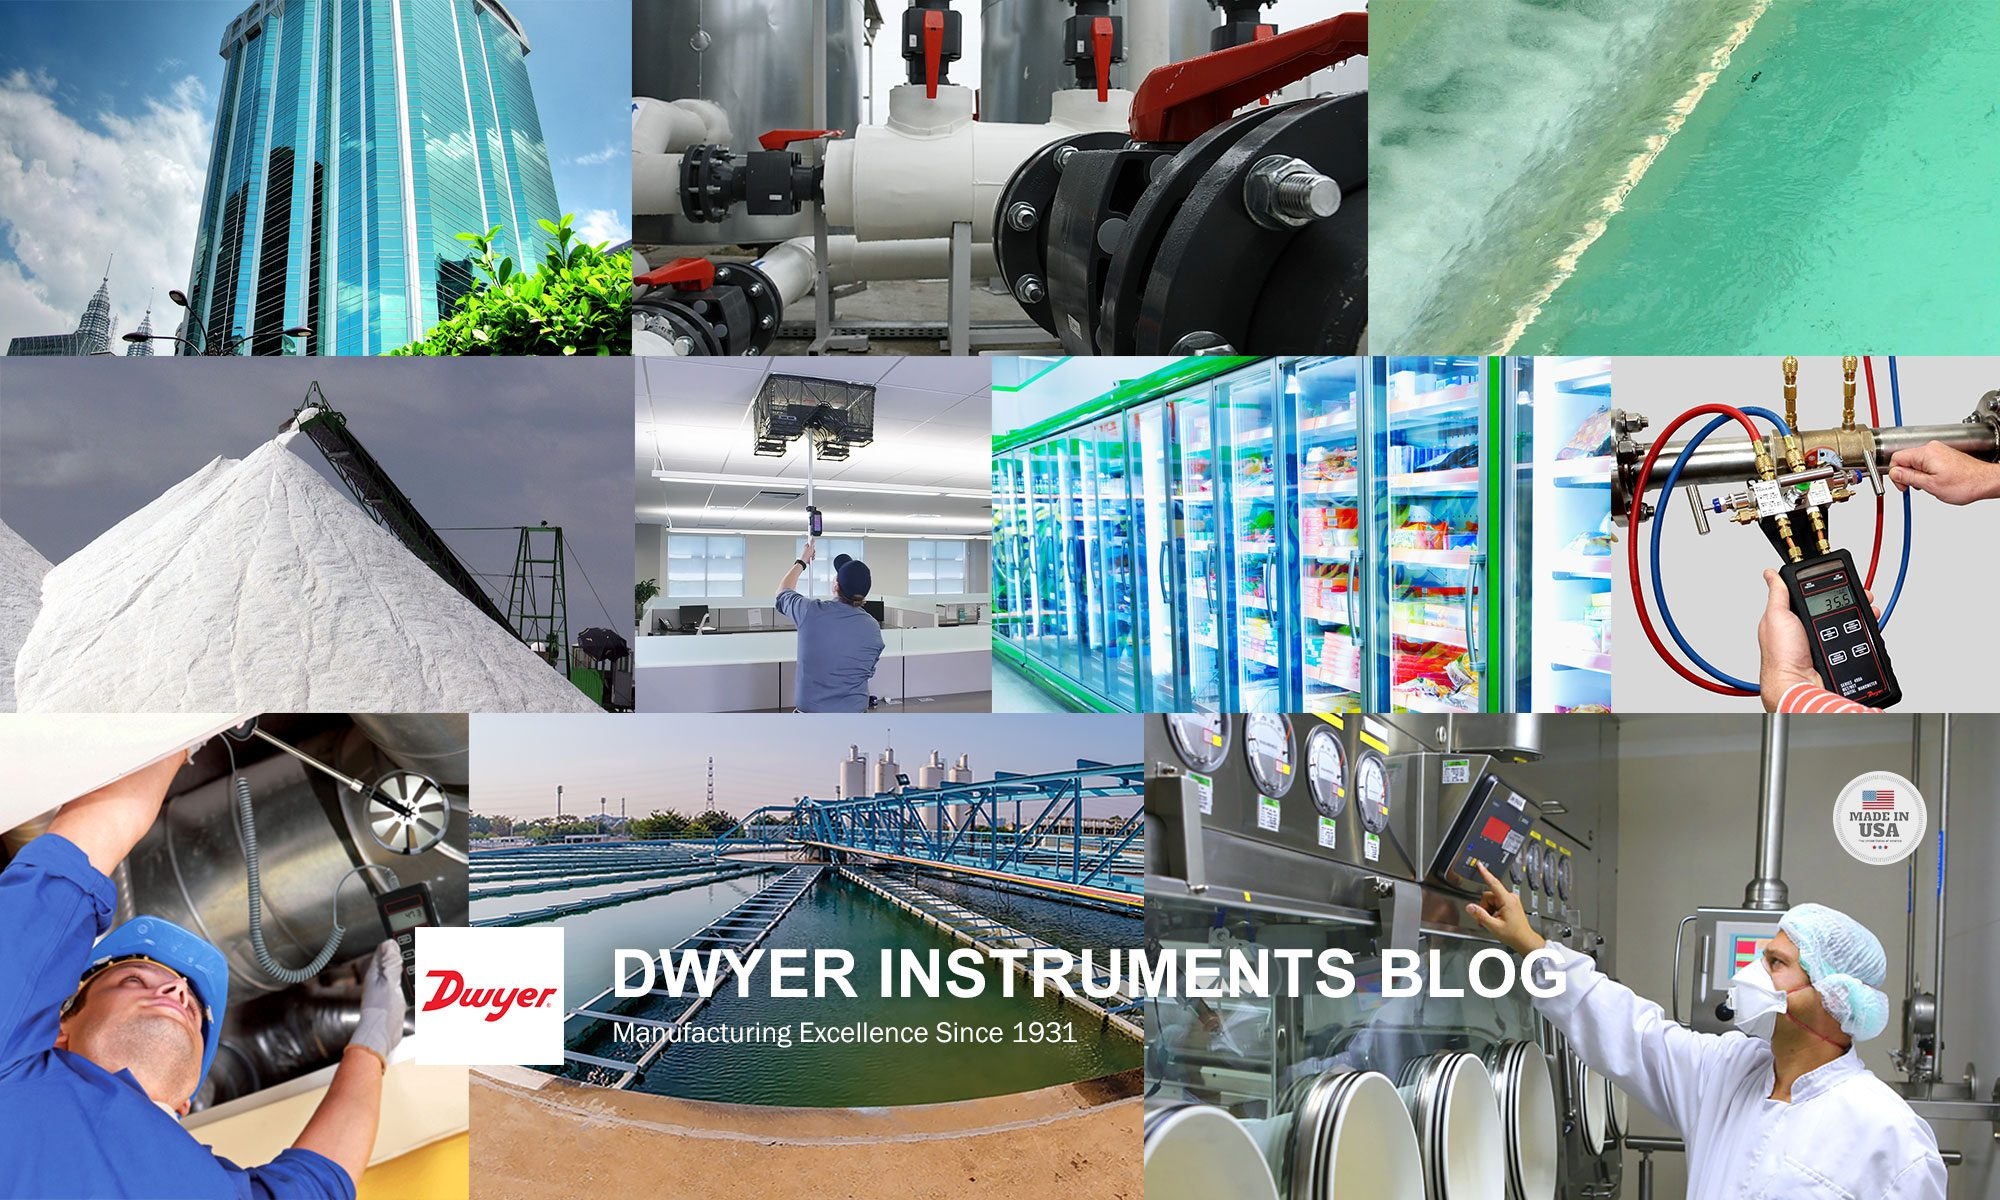 Dwyer Instruments Blog